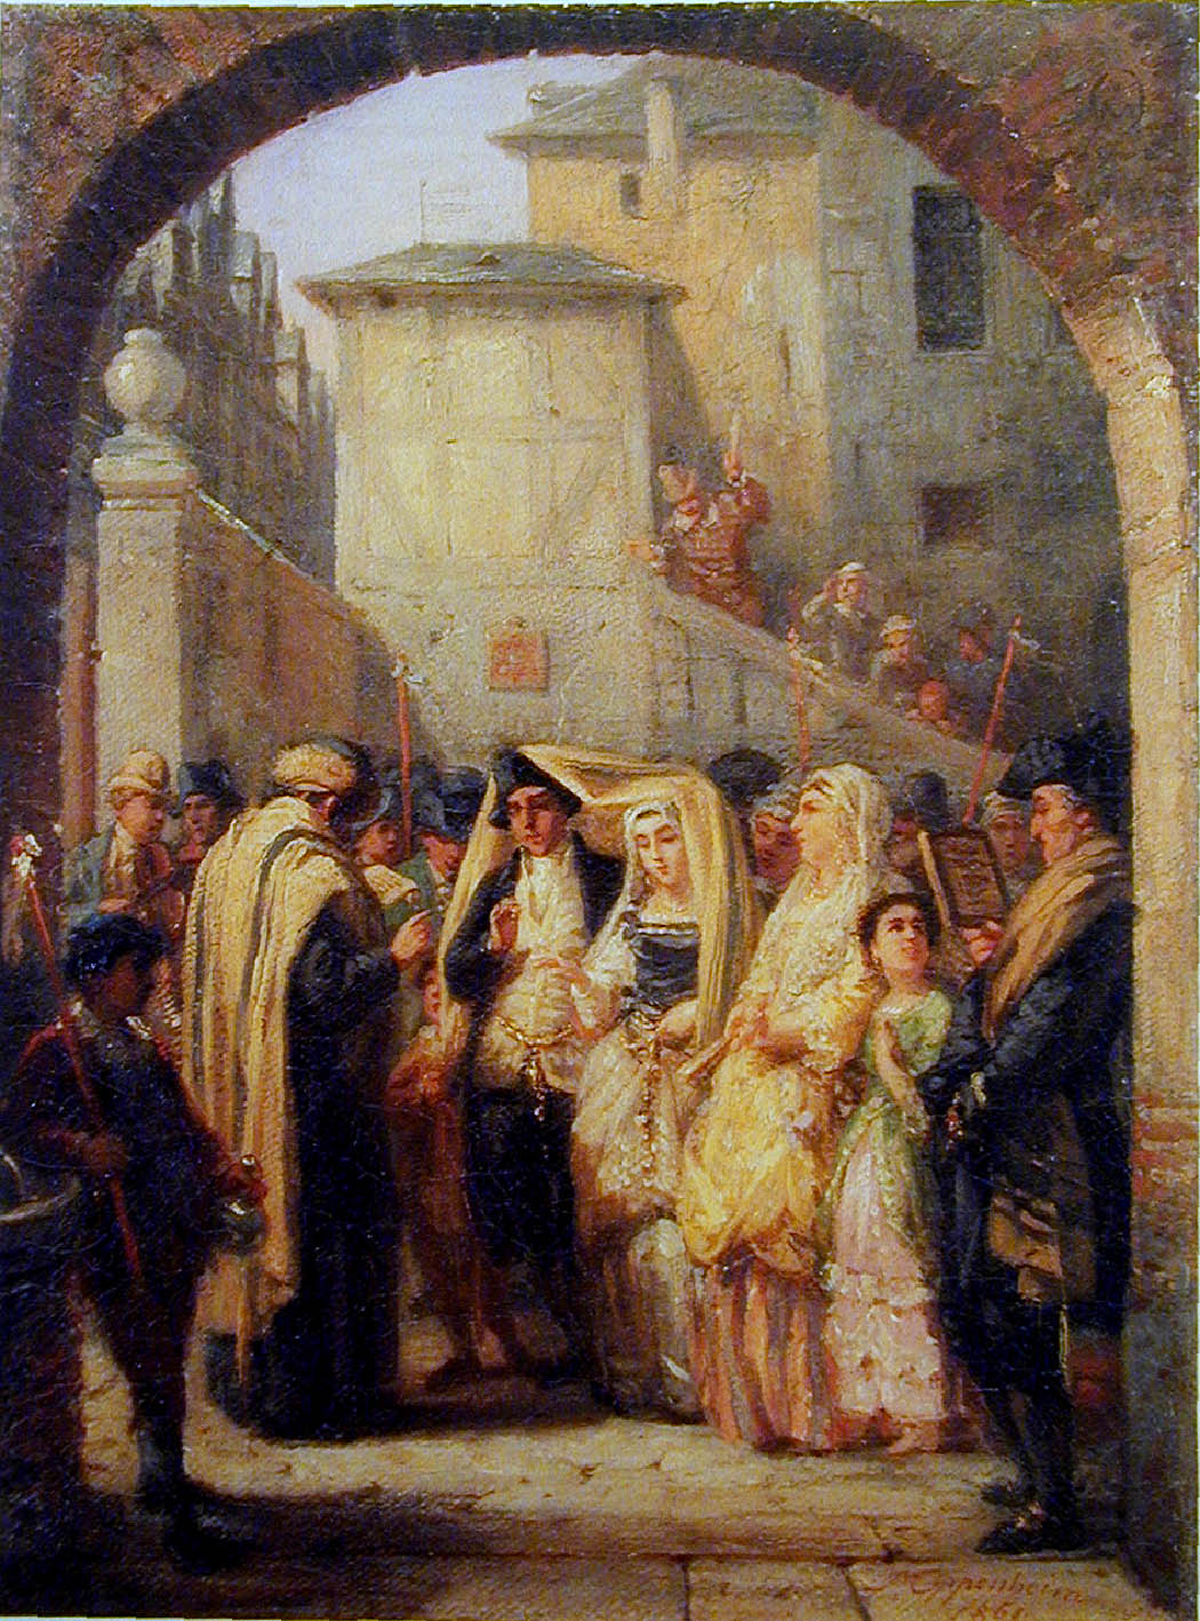 Wedding (oil on canvas) by Moritz Oppenheim Pictures of Traditional Jewish Family Life (1861) The Israel Museum, Jerusalem